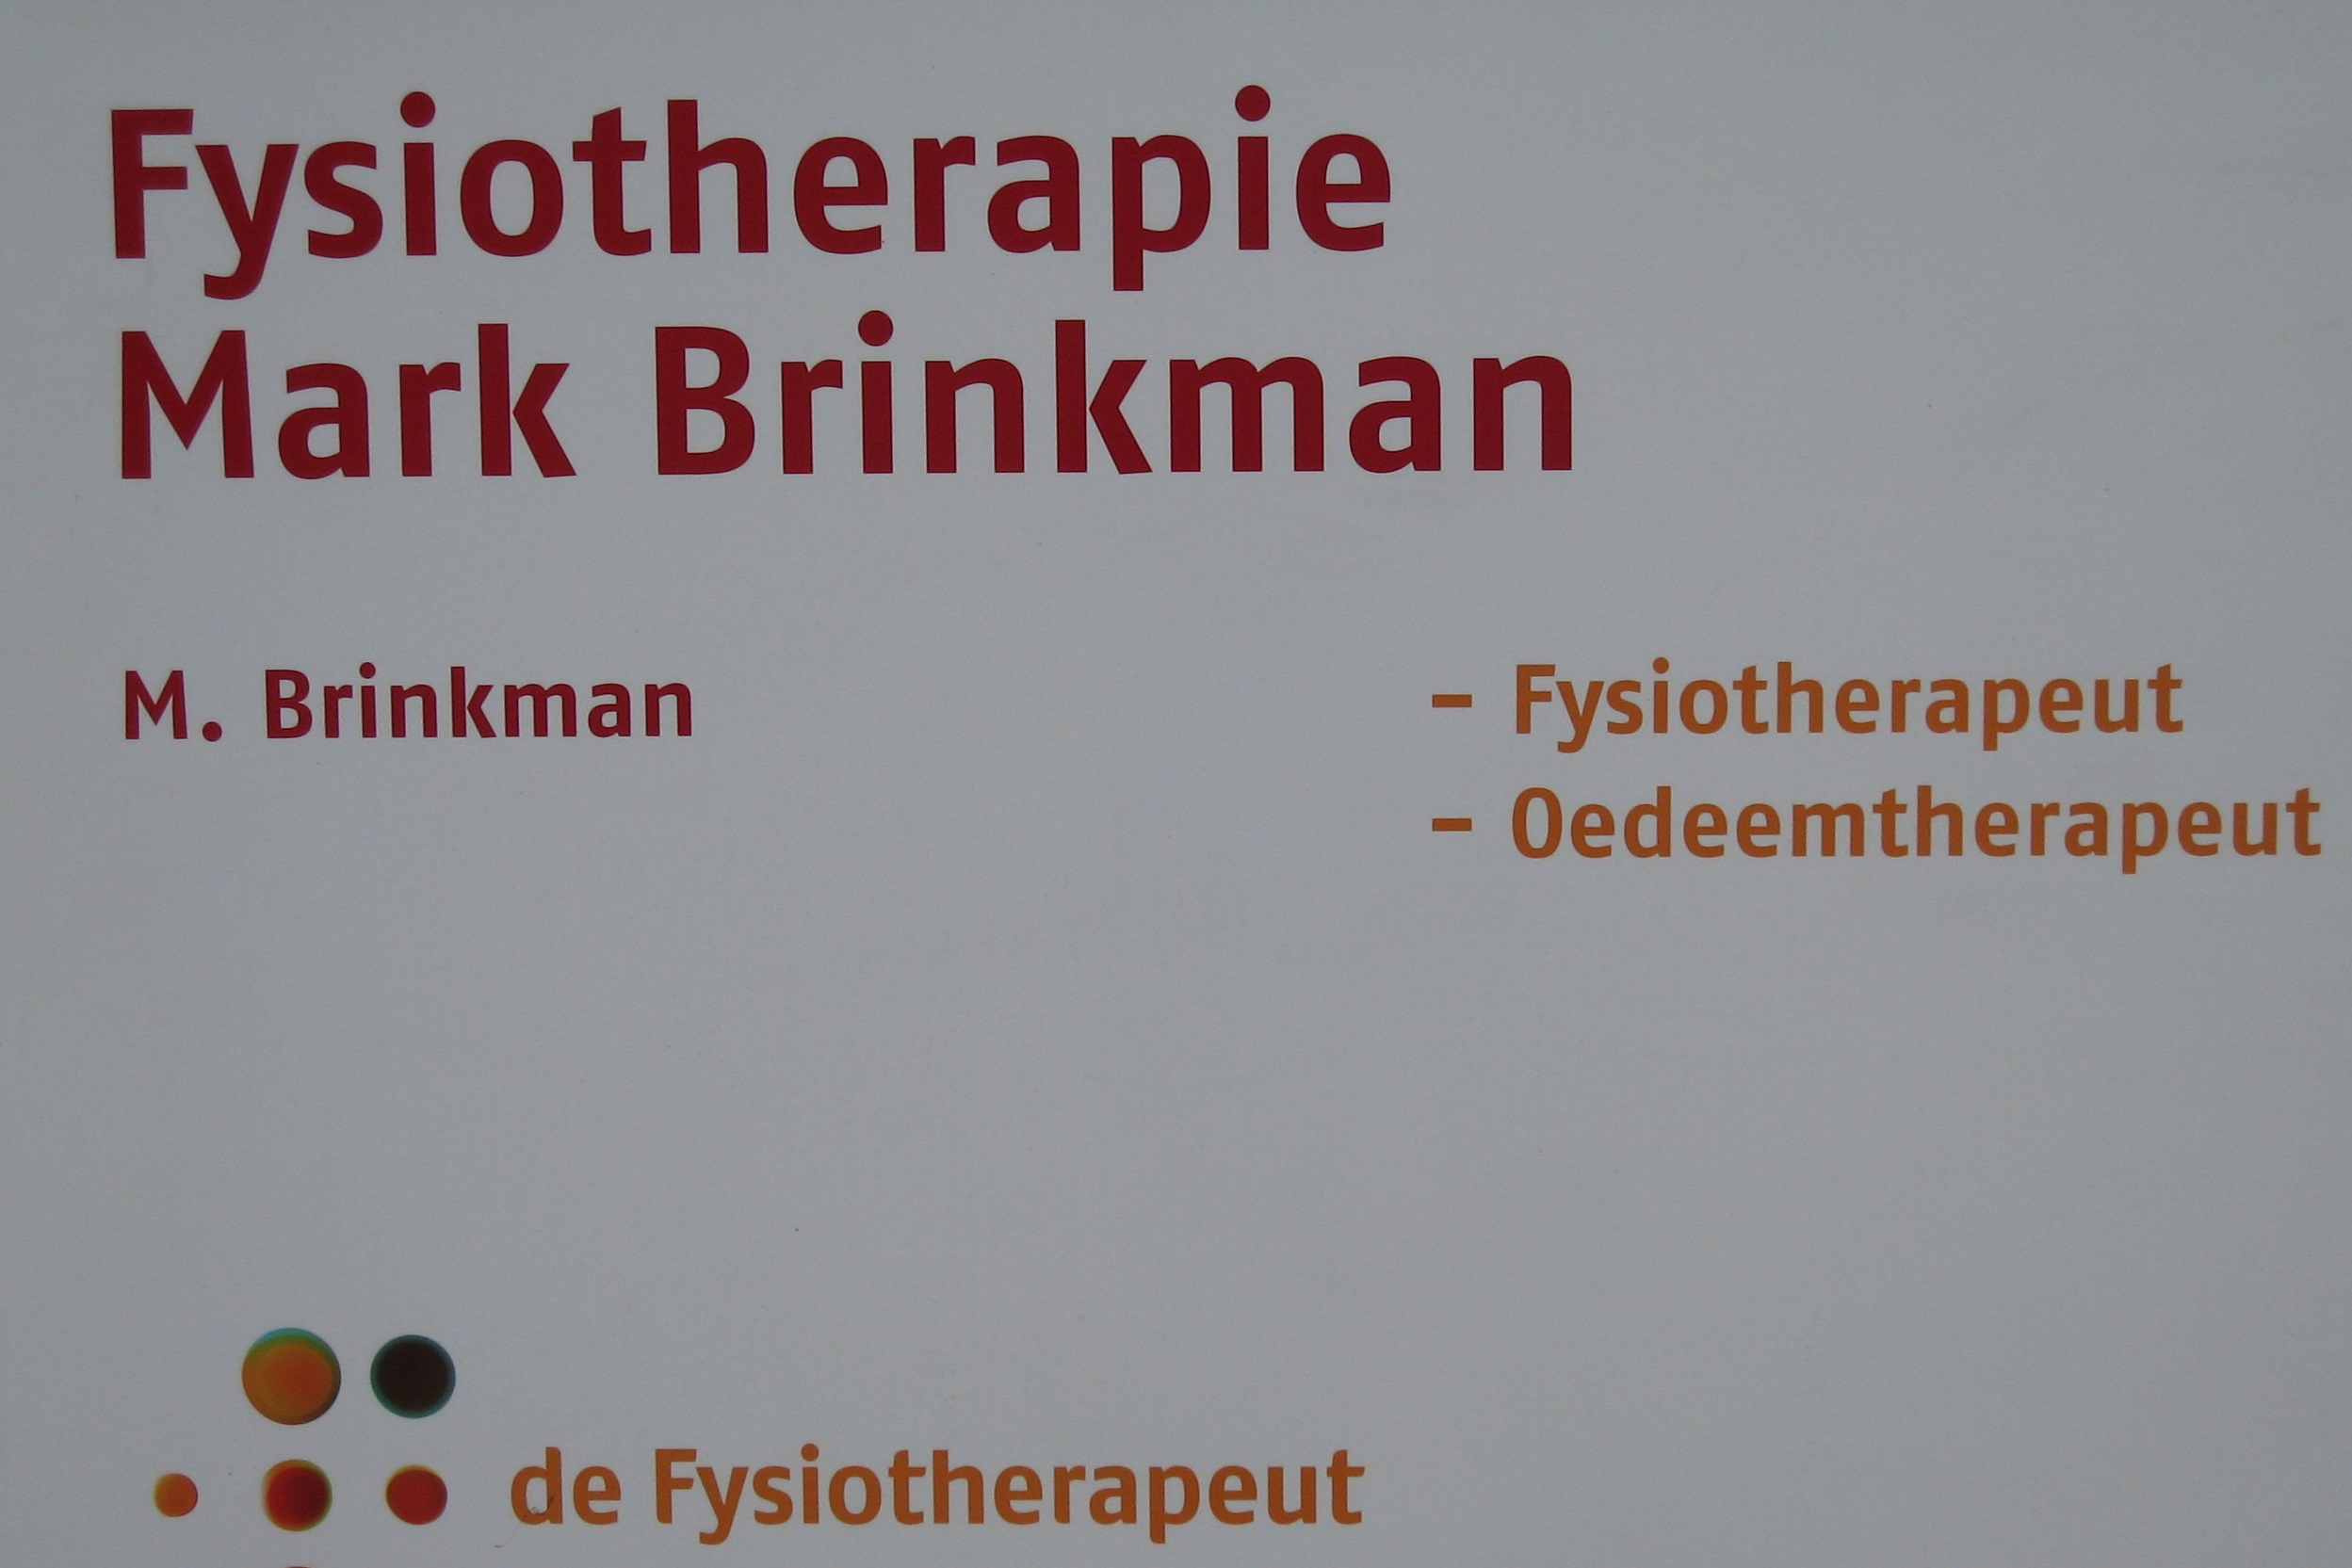 Fysiotherapie en Oedeemfysiotherapie Mark Brinkman